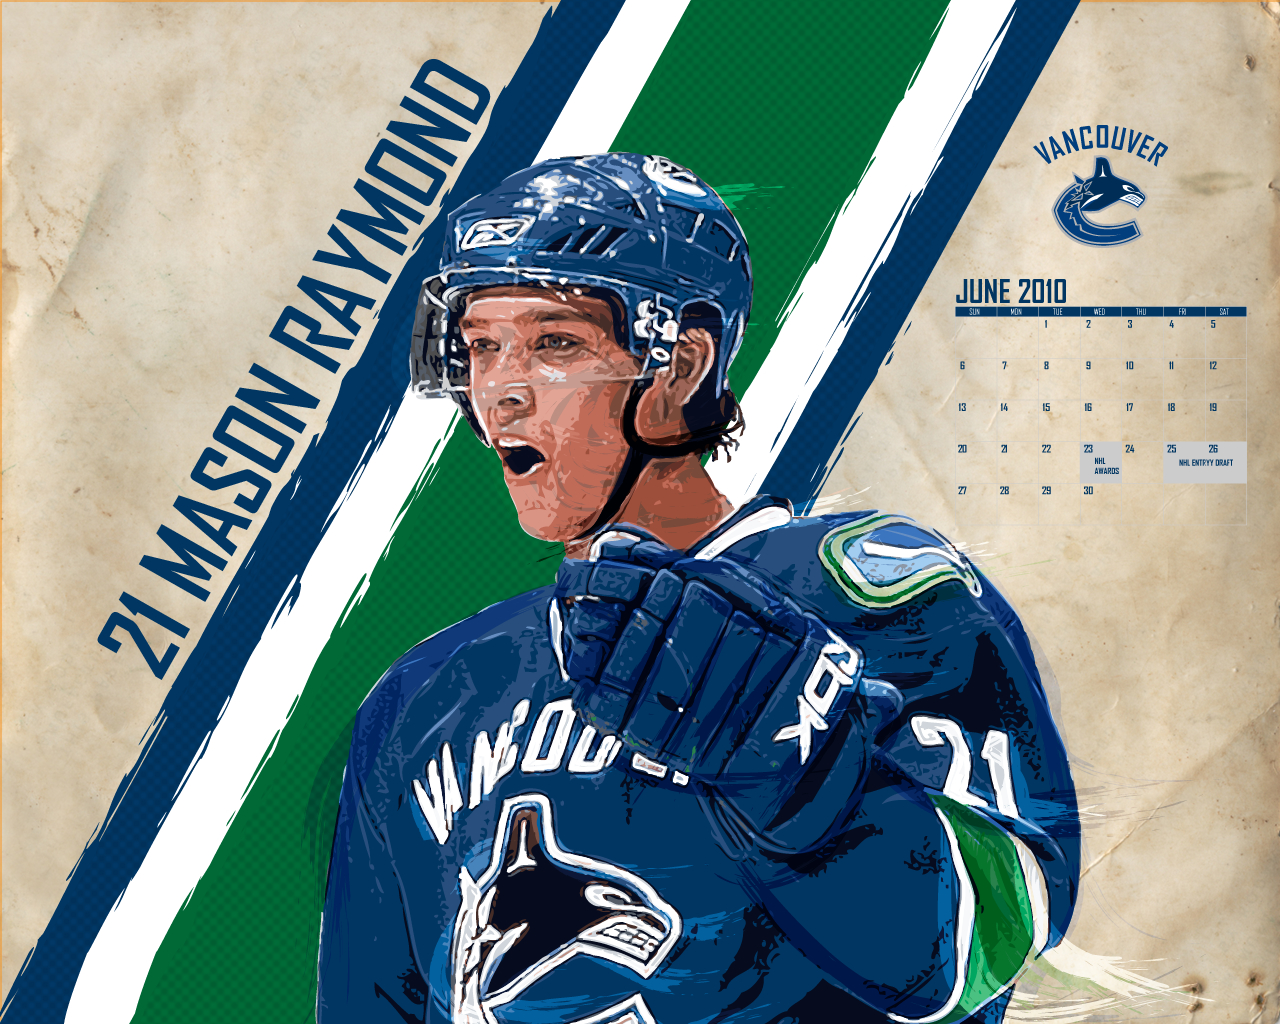 M. Raymond. Canucks. Wallpaper. June 2010.